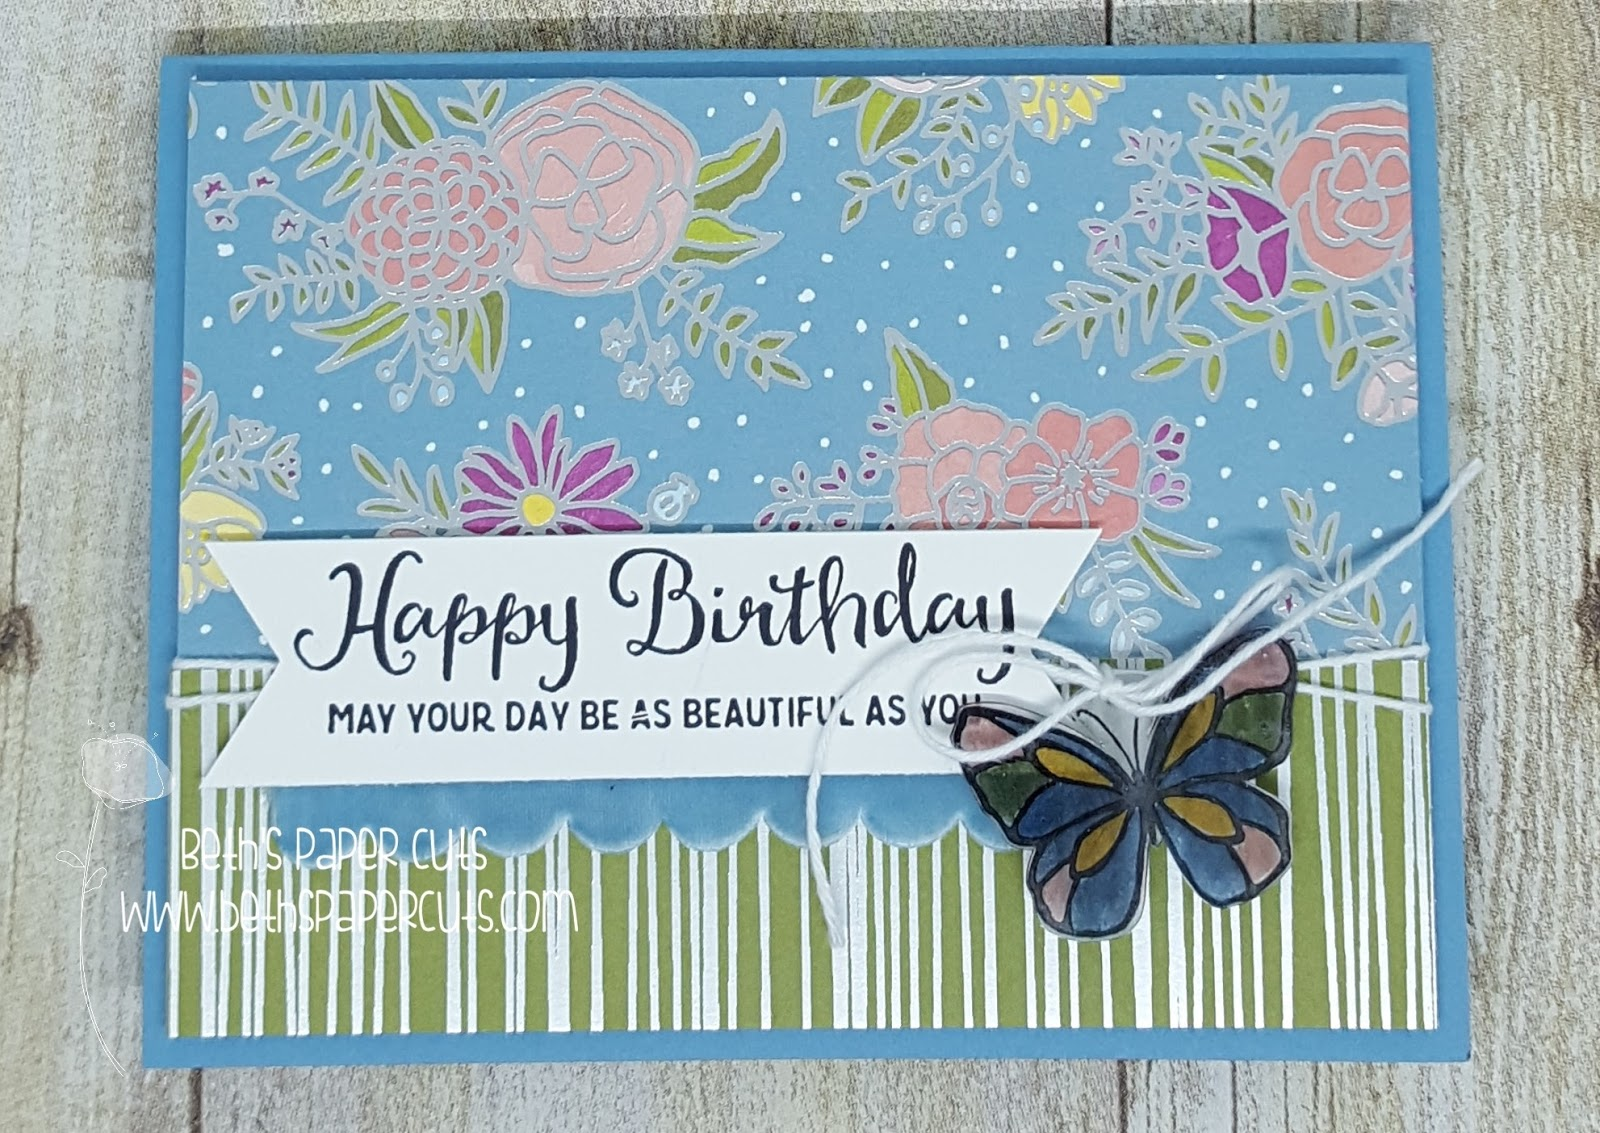 How to make a beautiful card by May 9